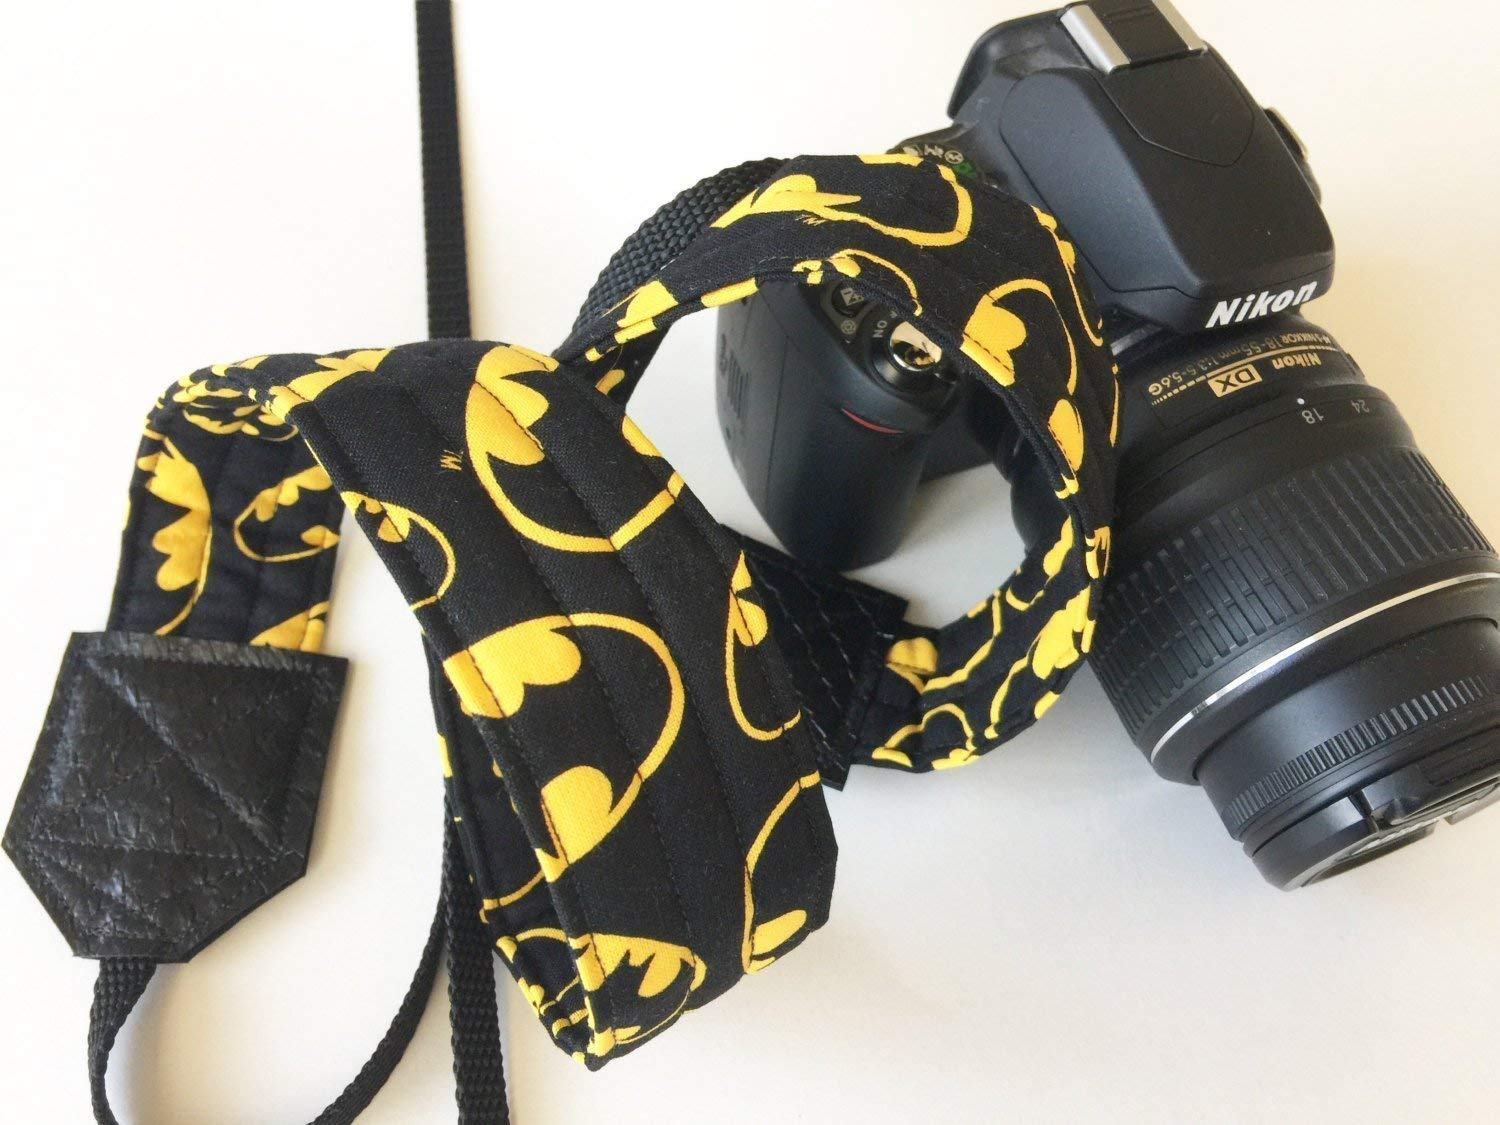 Batman Superhero Camera Strap - for men